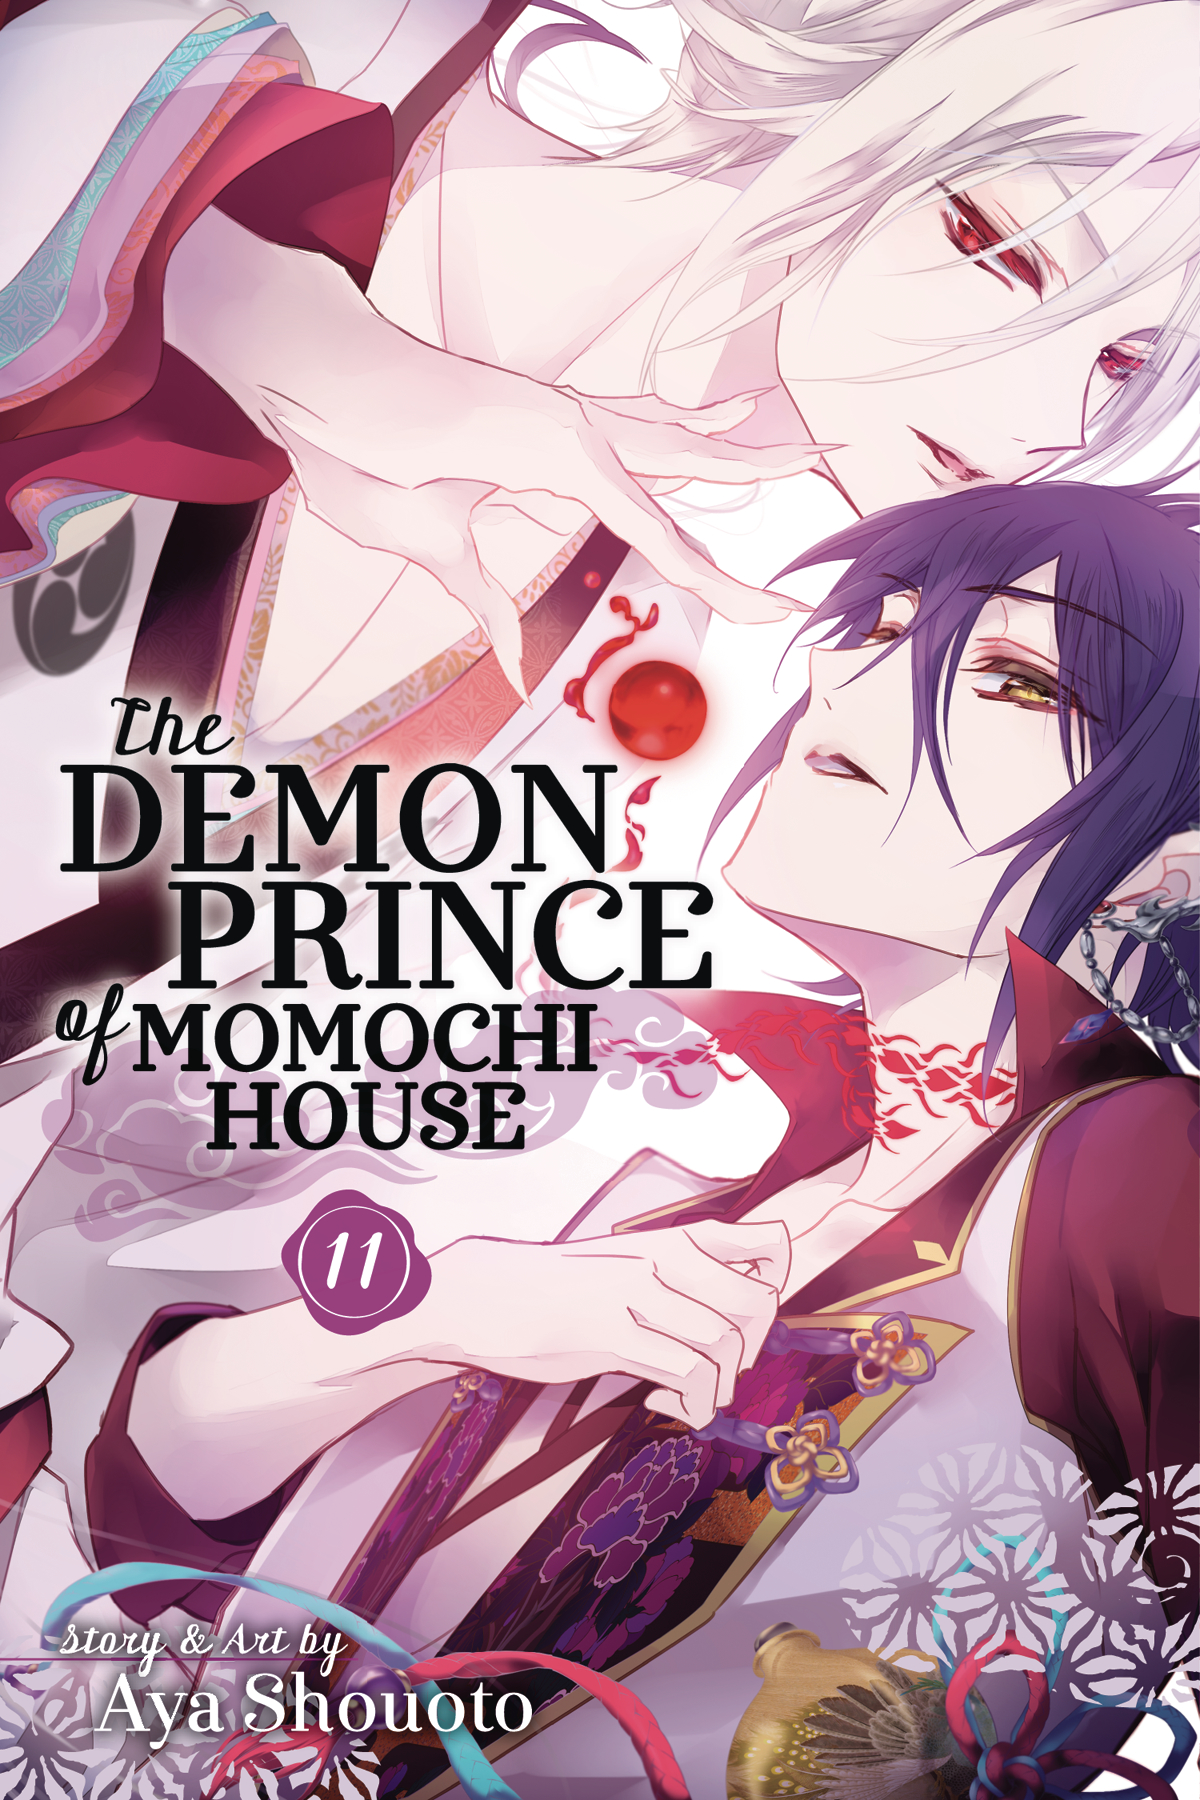 DEMON PRINCE OF MOMOCHI HOUSE GN VOL 11